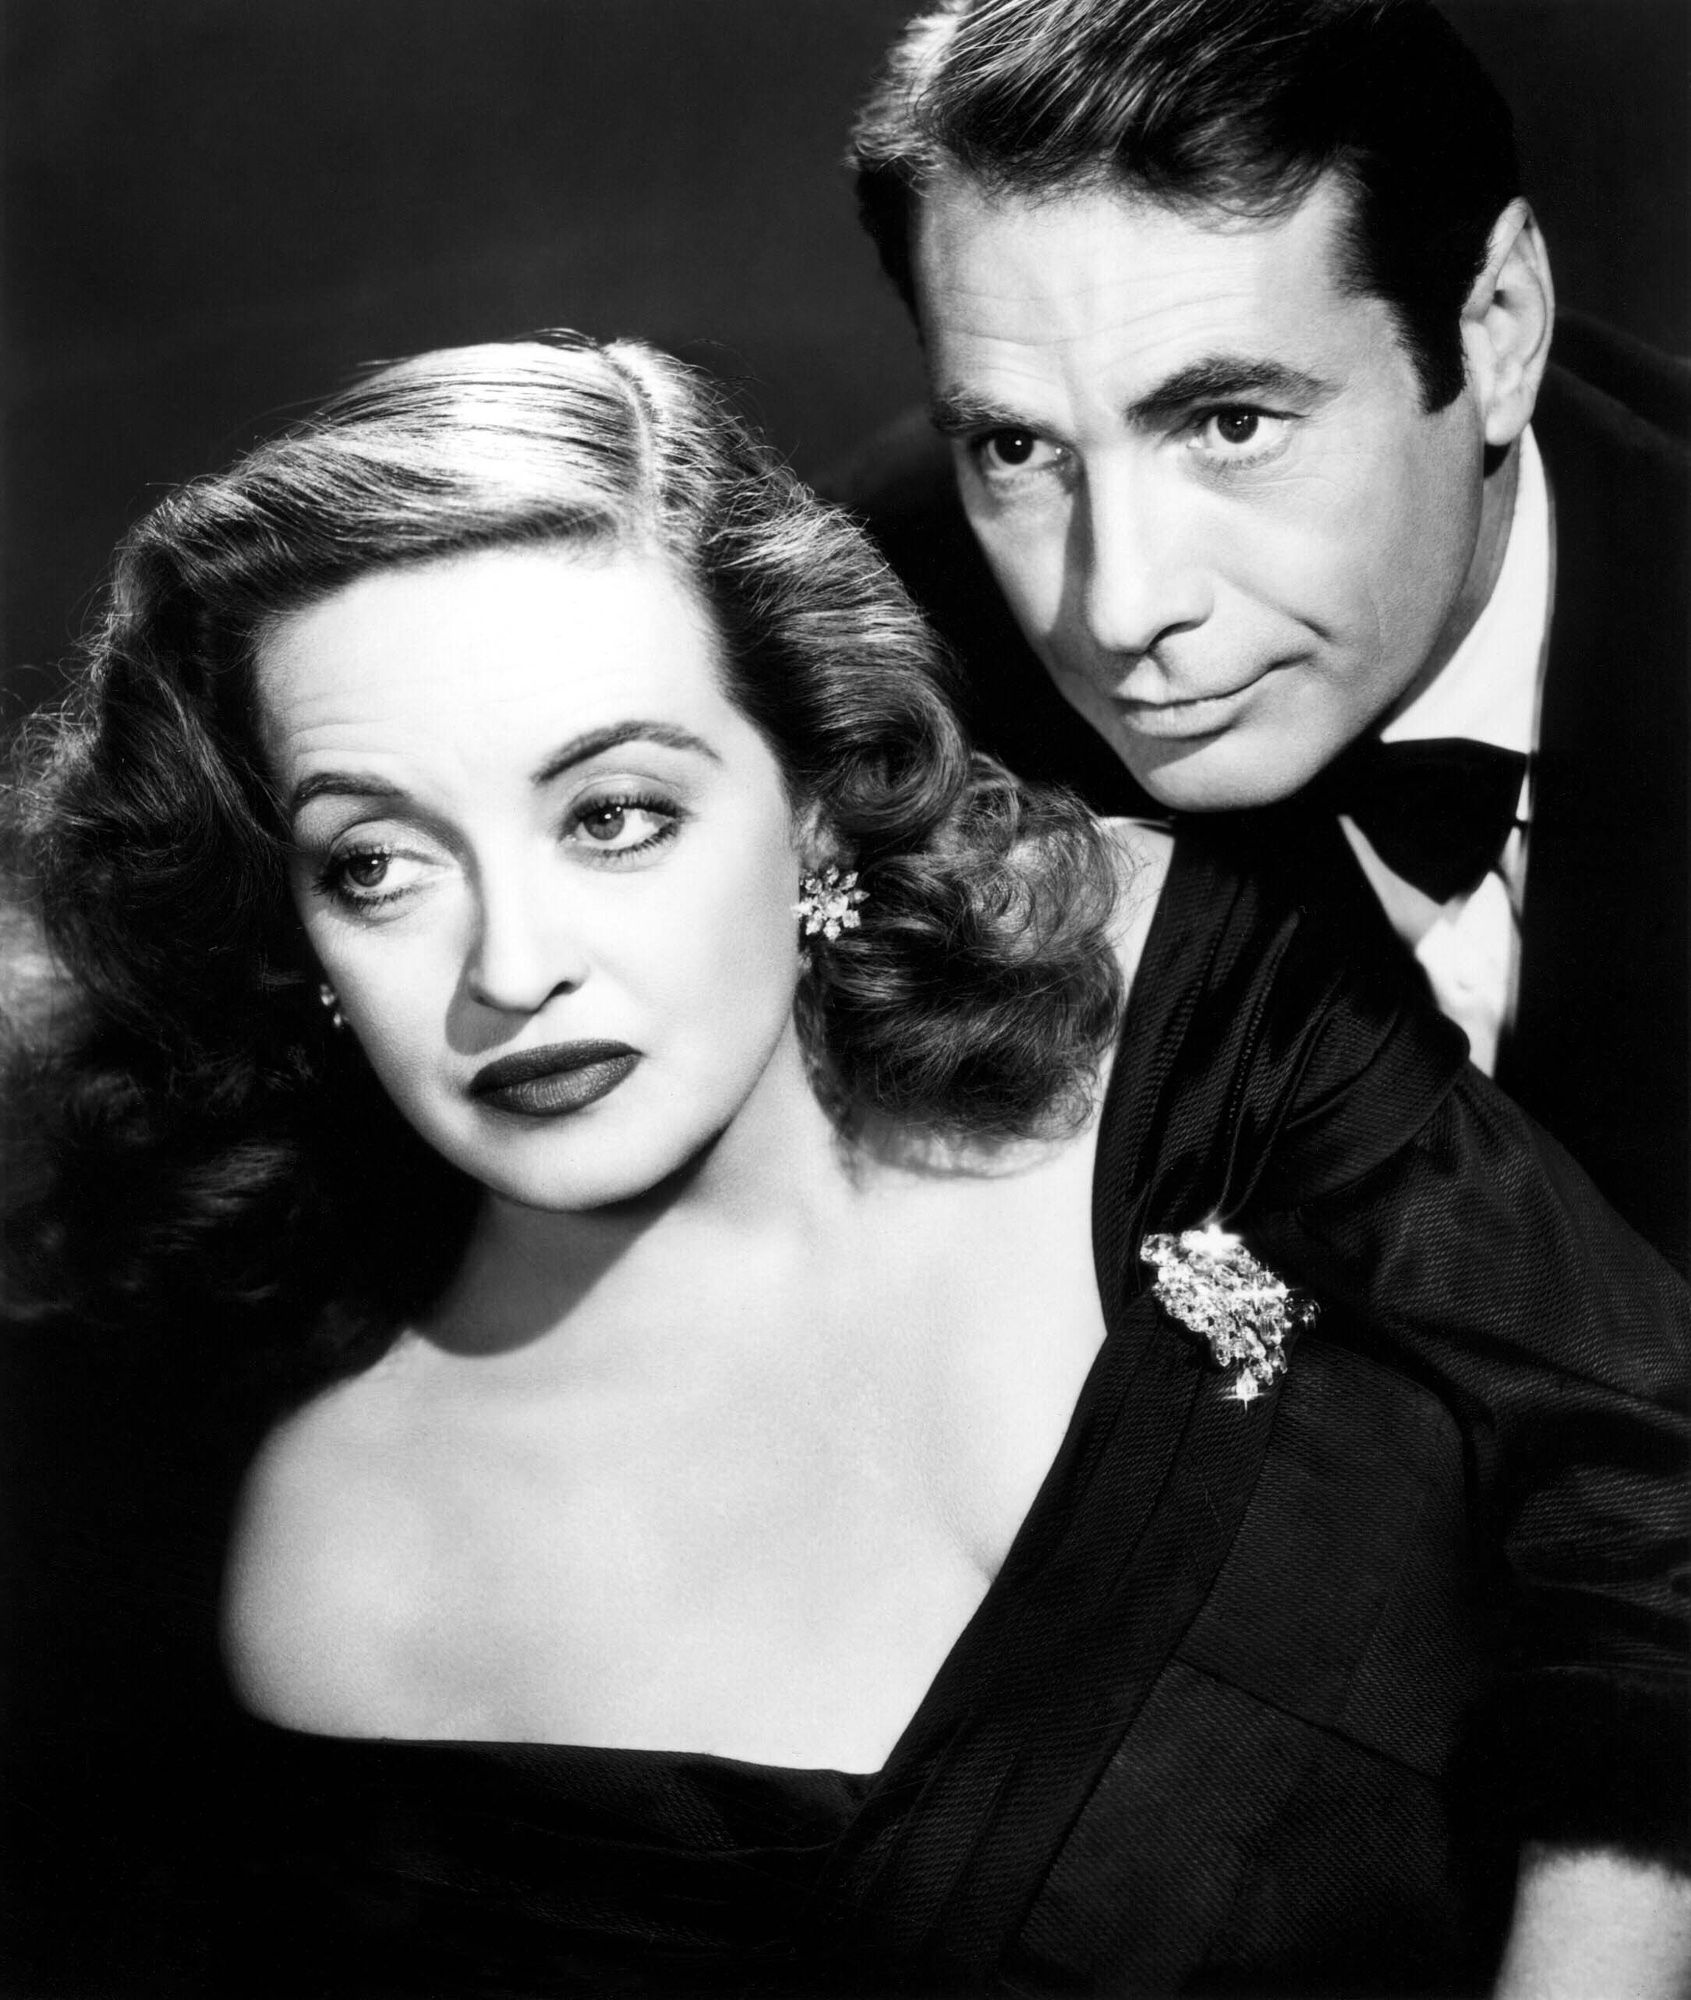 That's right....ALL ABOUT EVE. It's 1950 and Bette Davis as Margo Channing....it couldn't get any better.